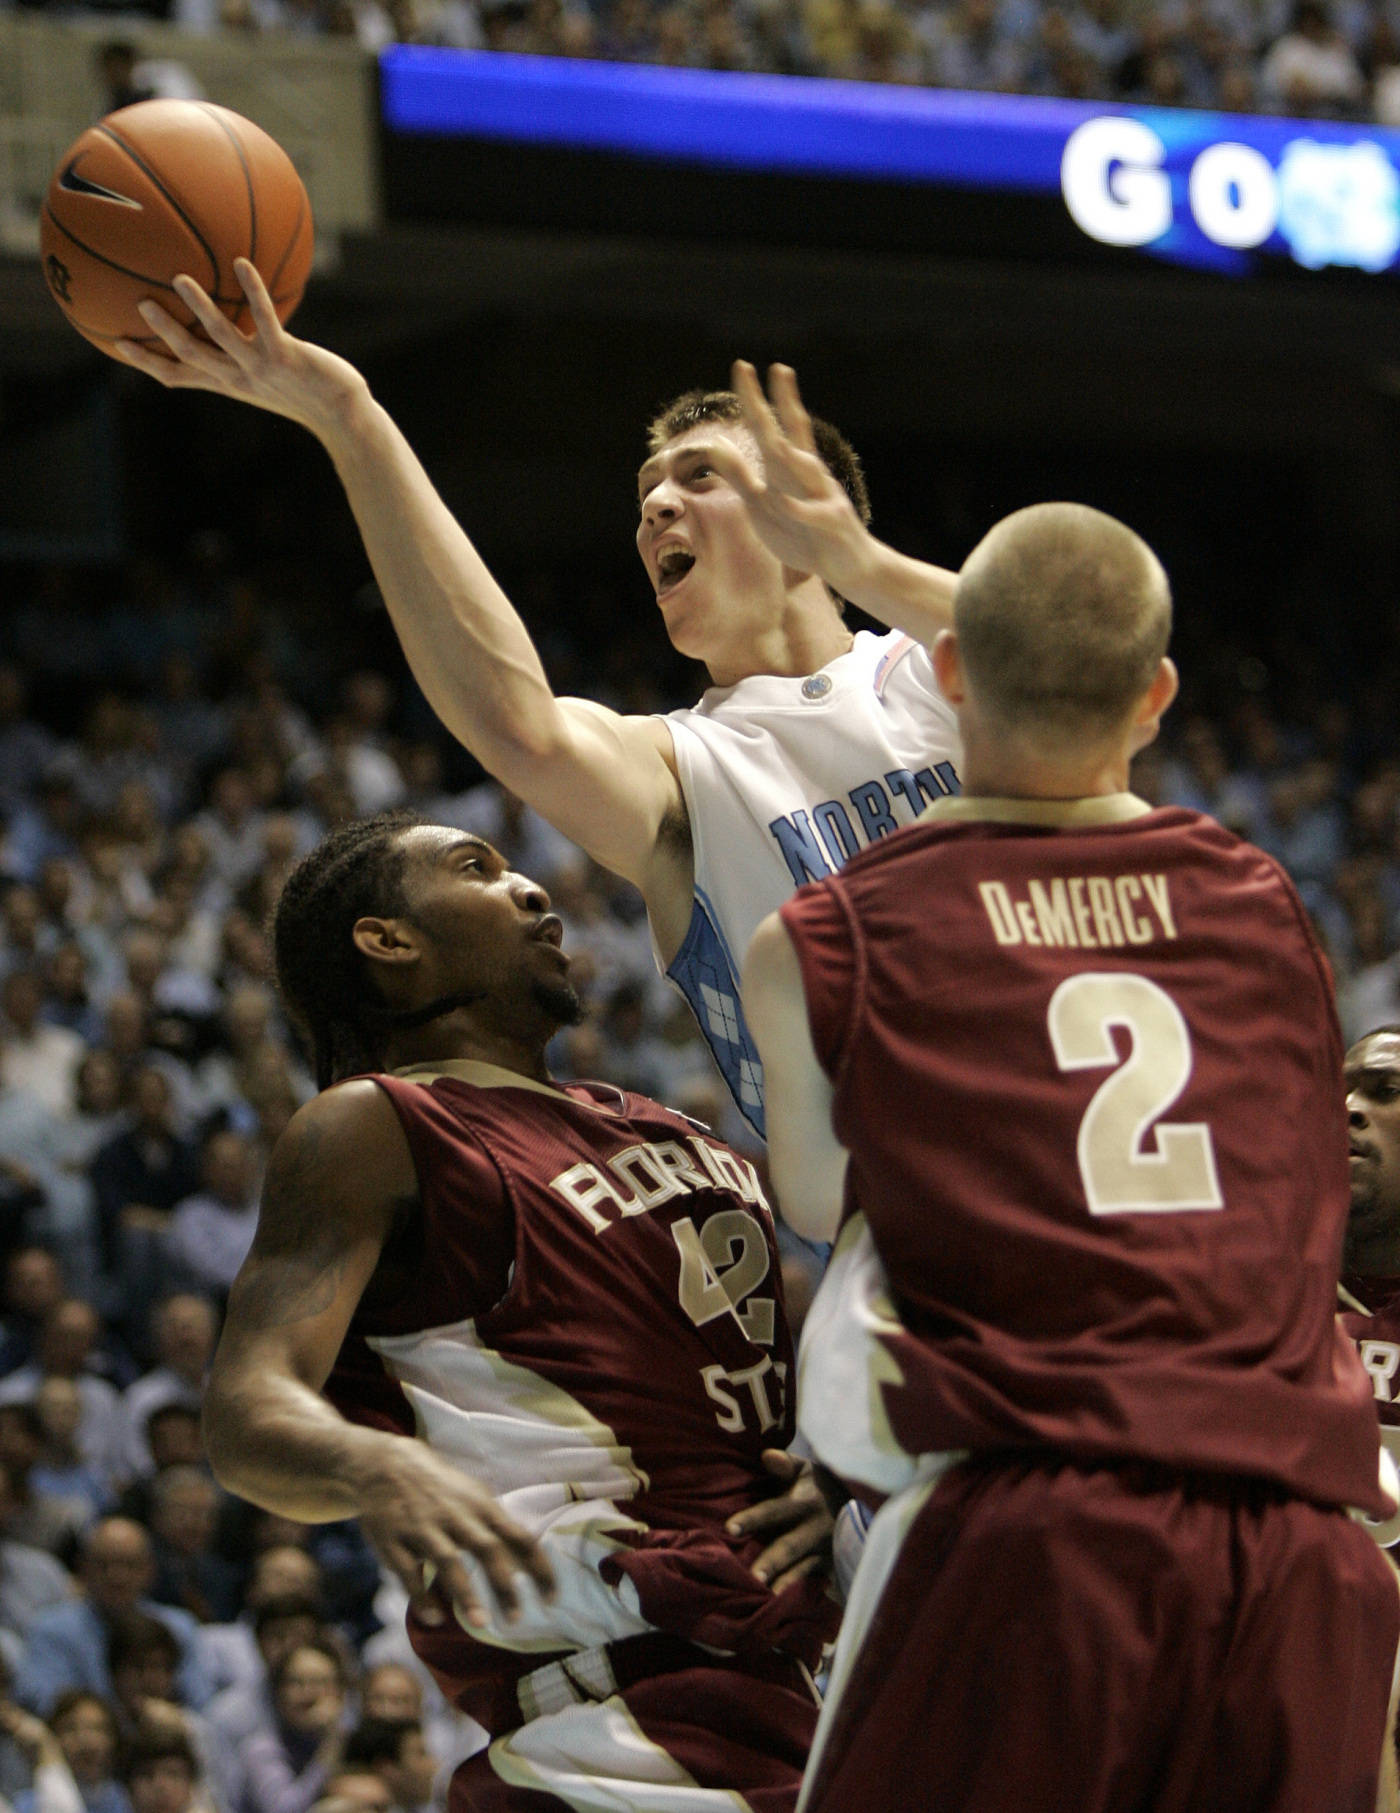 North Carolina's Tyler Hansbrough, center, drives between Florida State's Ryan Reid (42) and Jordan DeMercy (2) during the first half of a college basketball game in Chapel Hill, N.C., Tuesday, March 4, 2008. (AP Photo/Gerry Broome)